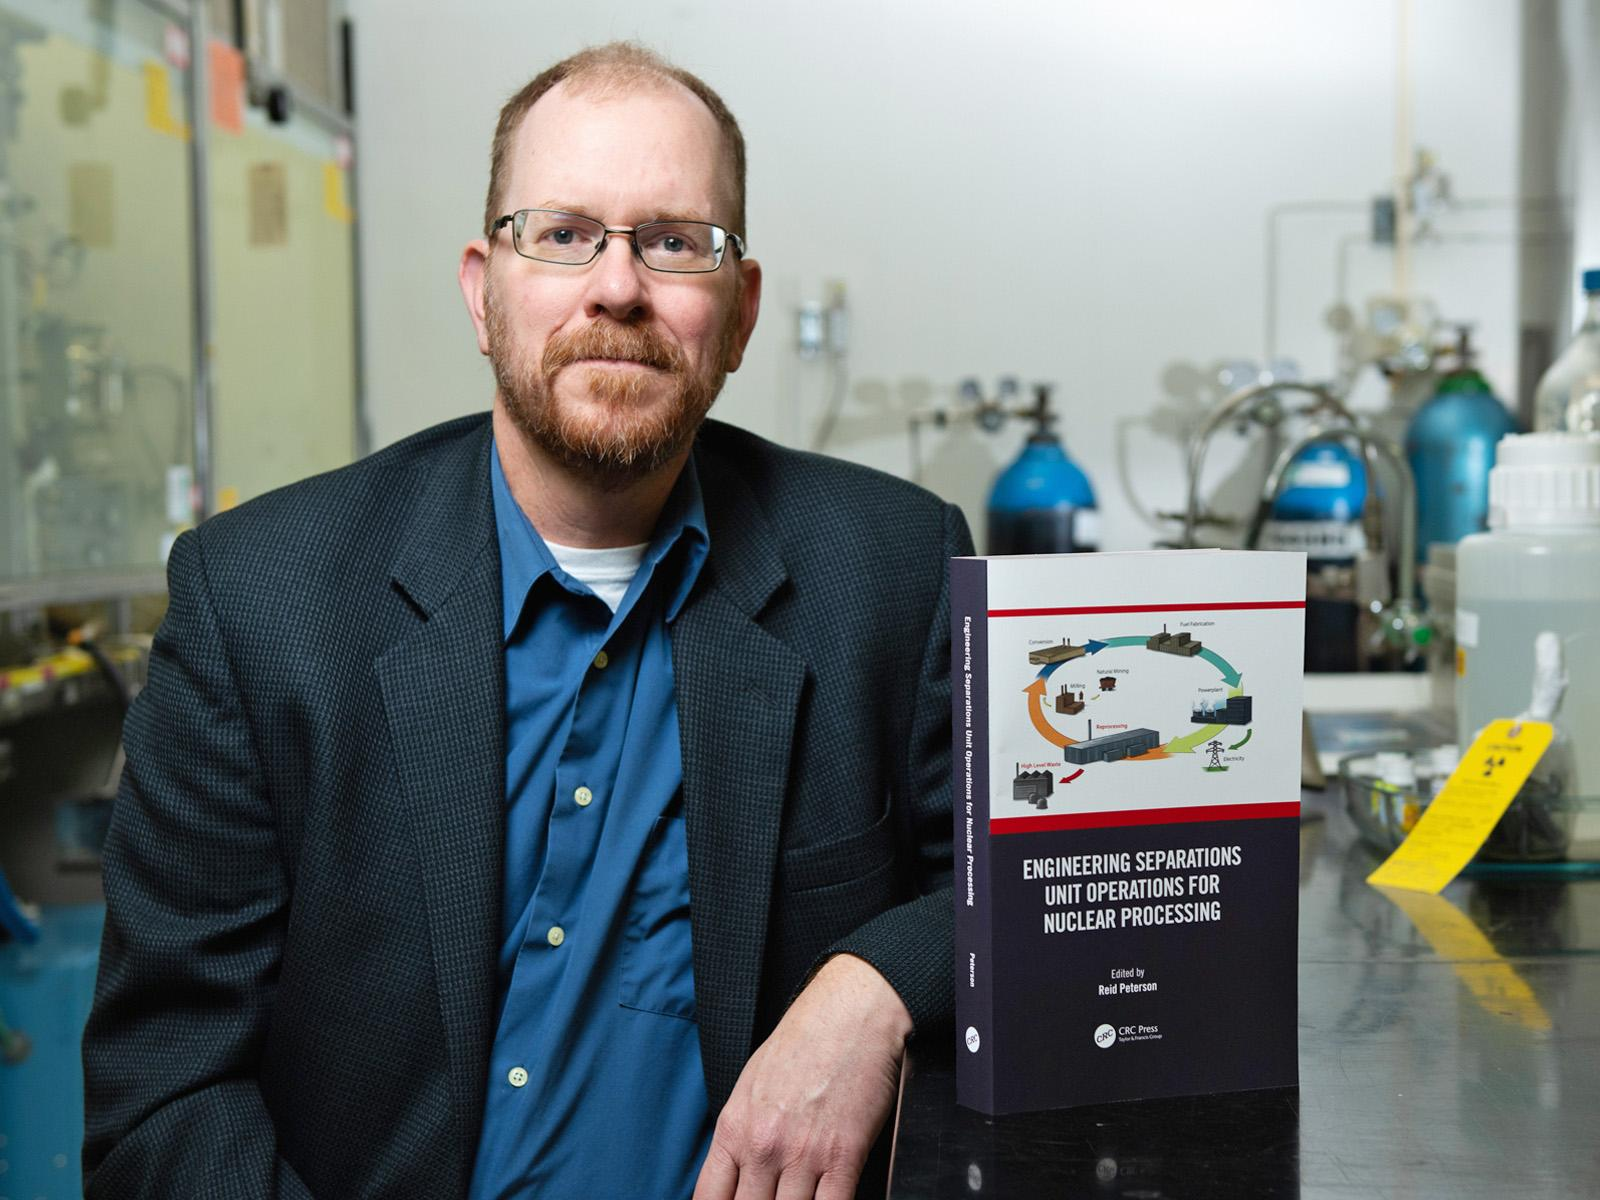 Scientist Reid Peterson shows a book about nuclear chemistry while sitting in a research lab.